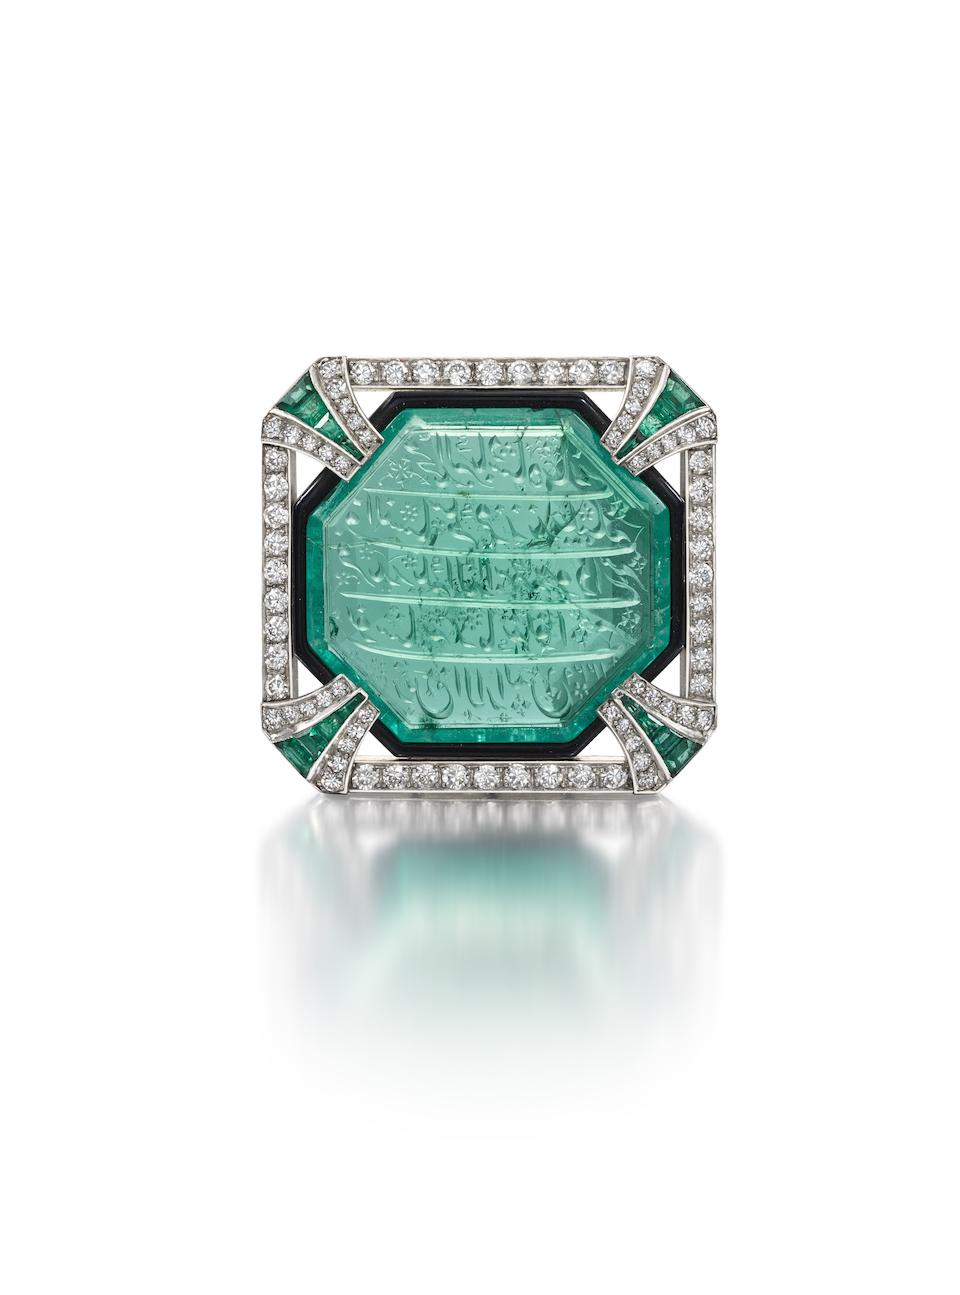 An Art Deco emerald, diamond and enamel brooch, by Hennell, circa 1925,